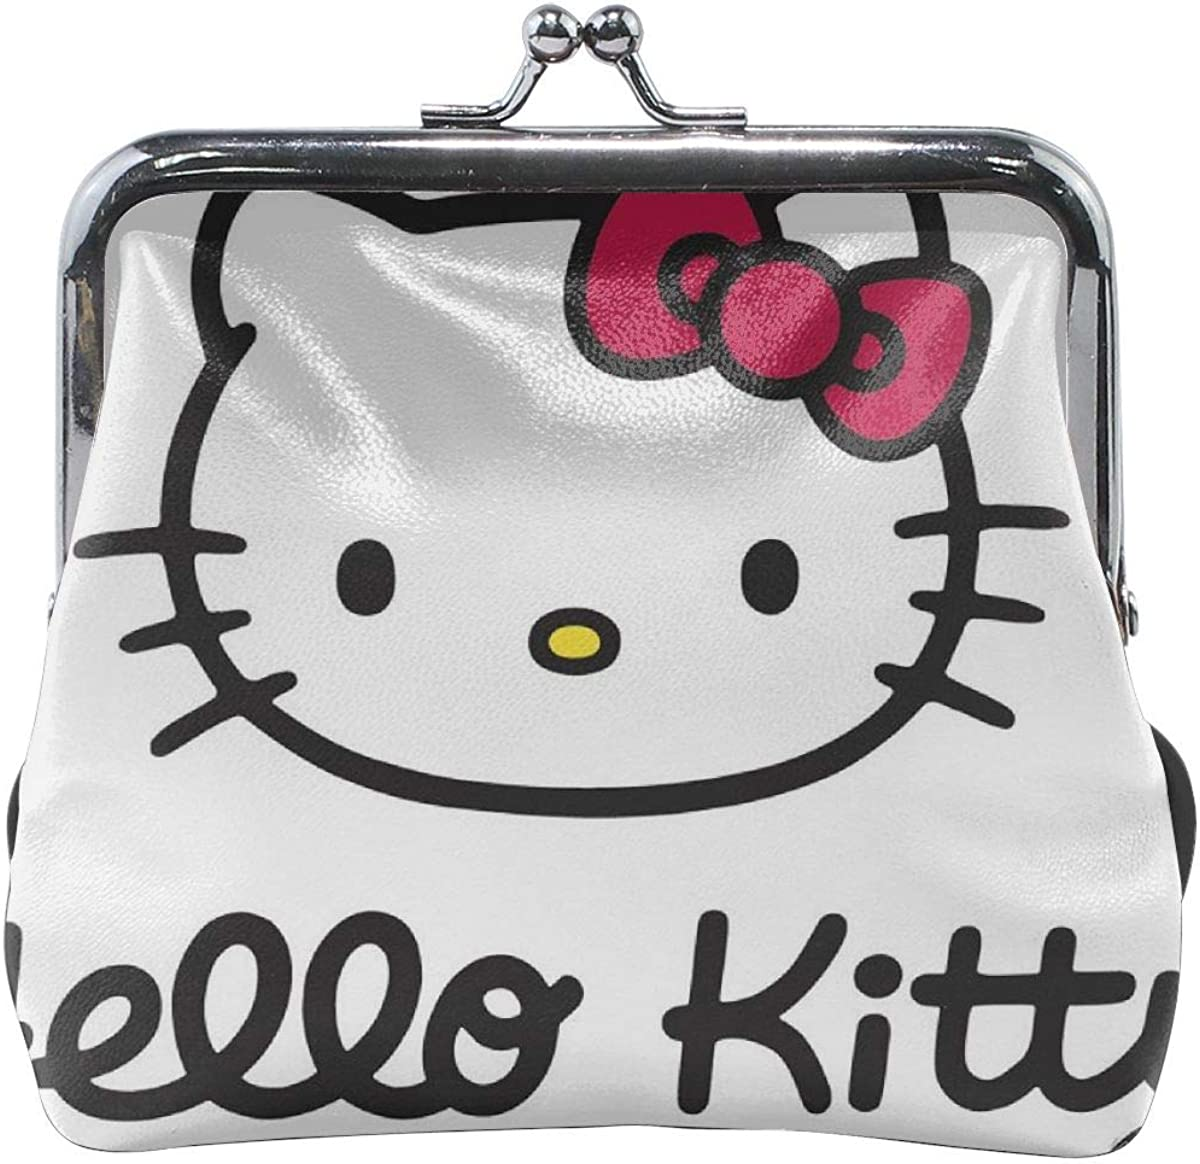 HELLO KITTY COIN CHANGE PURSE-STURDY WITH CLASP FREE SHIPPING USA-STYLE 2